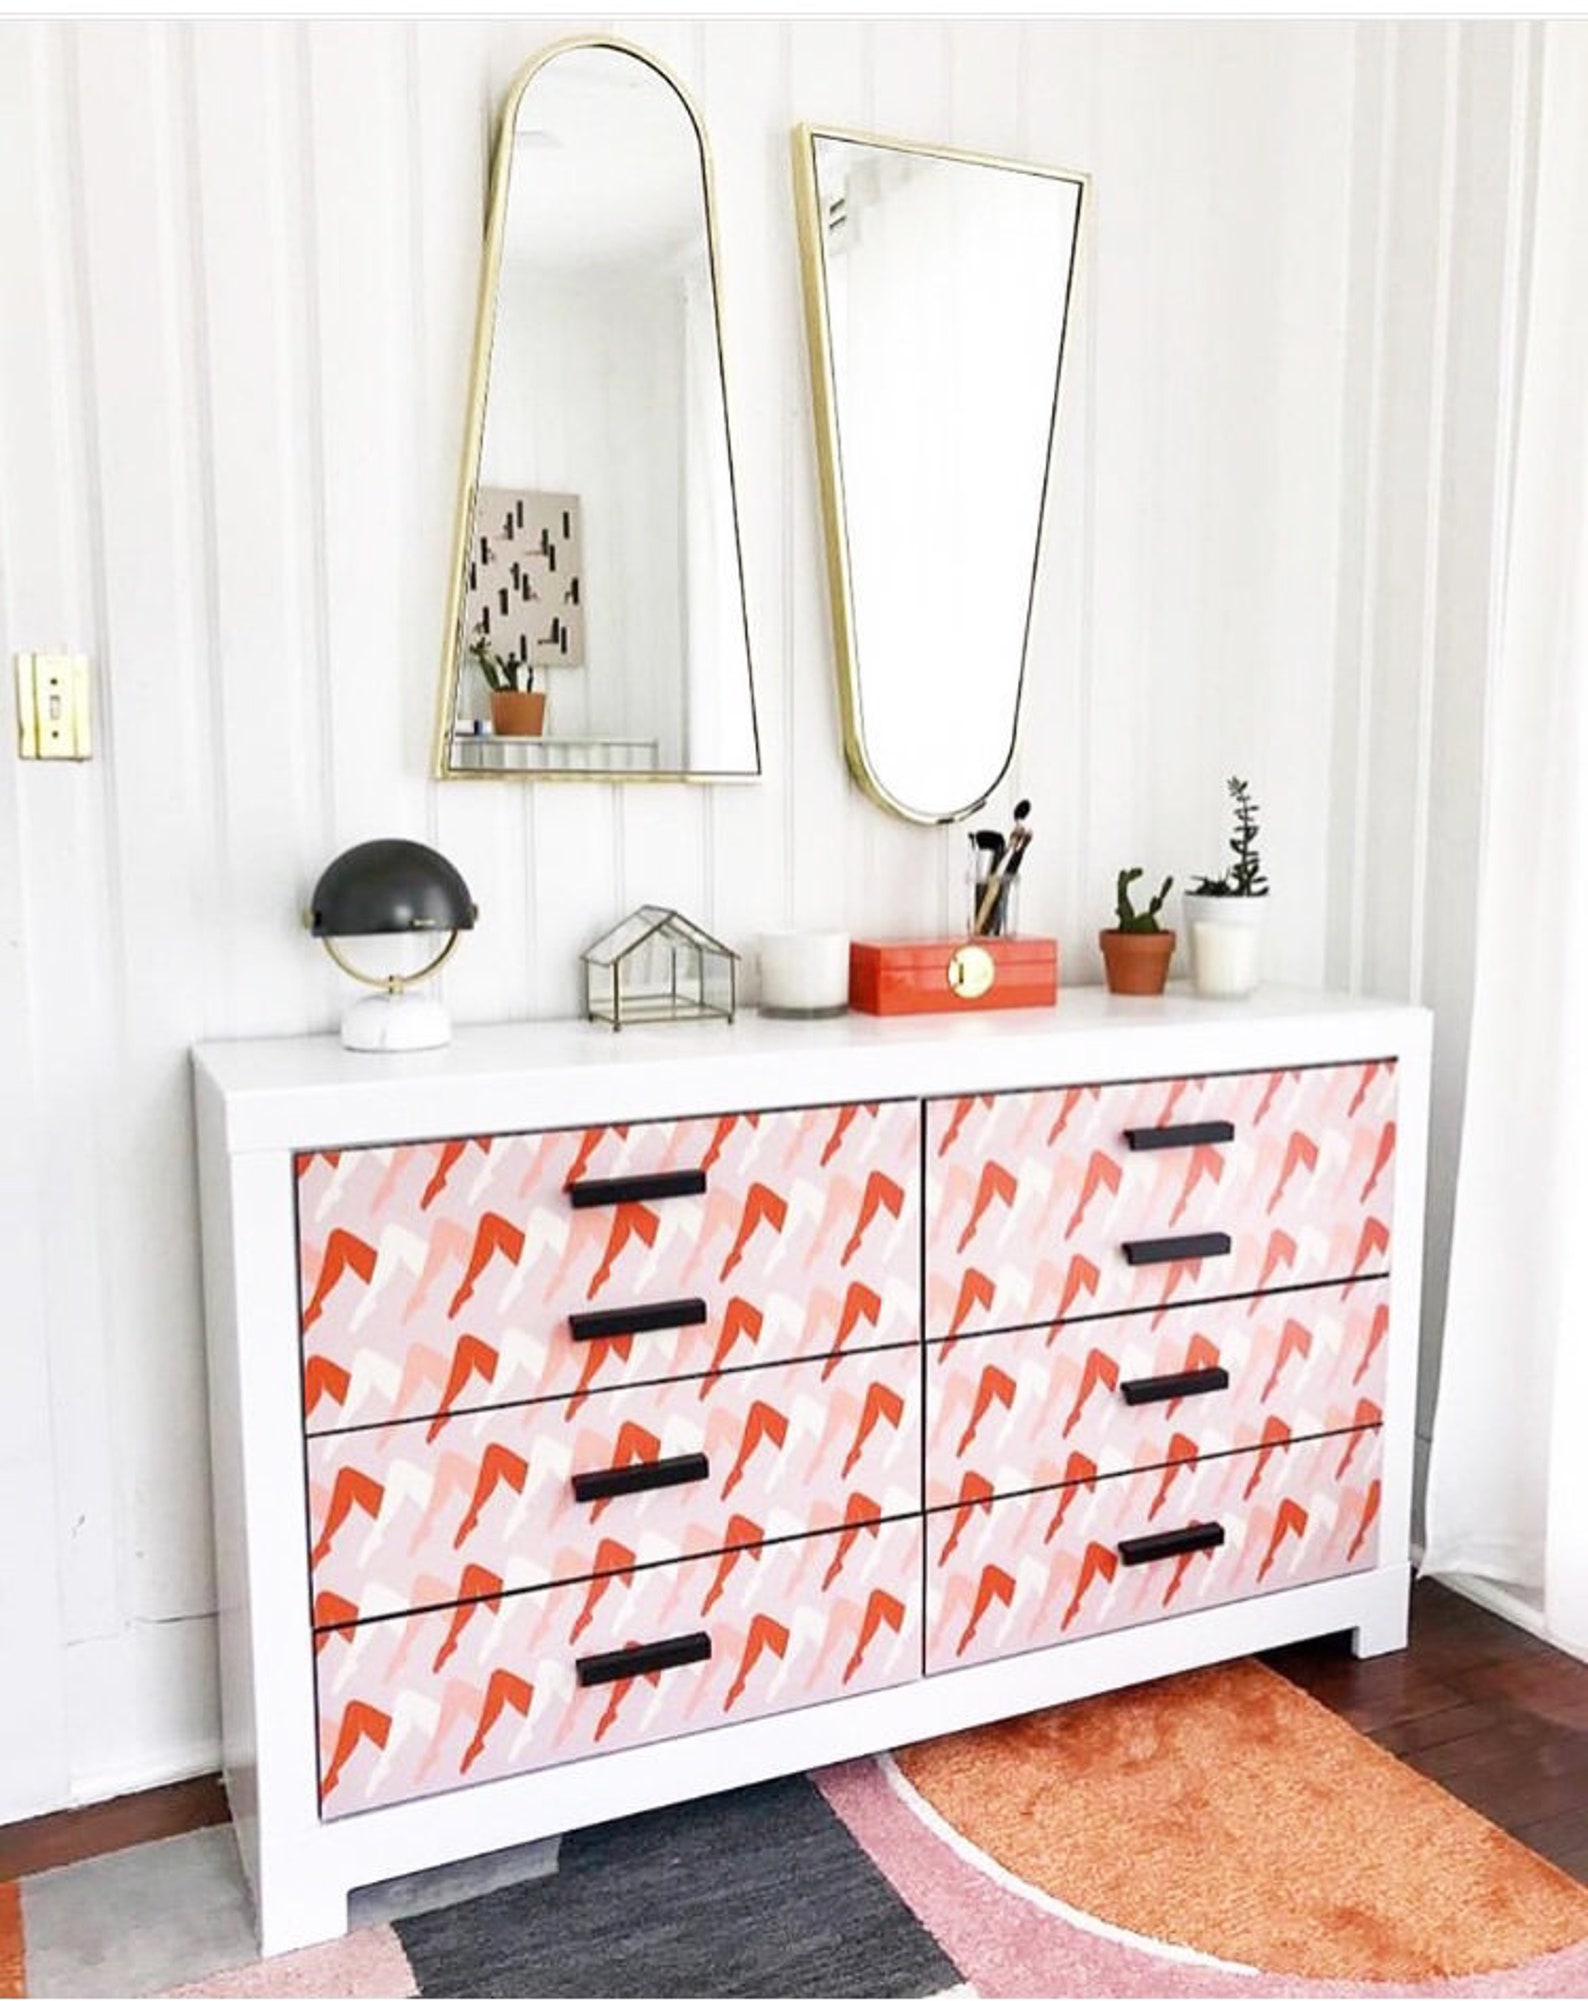 Removable Wallpaper Decals for Dresser Drawers